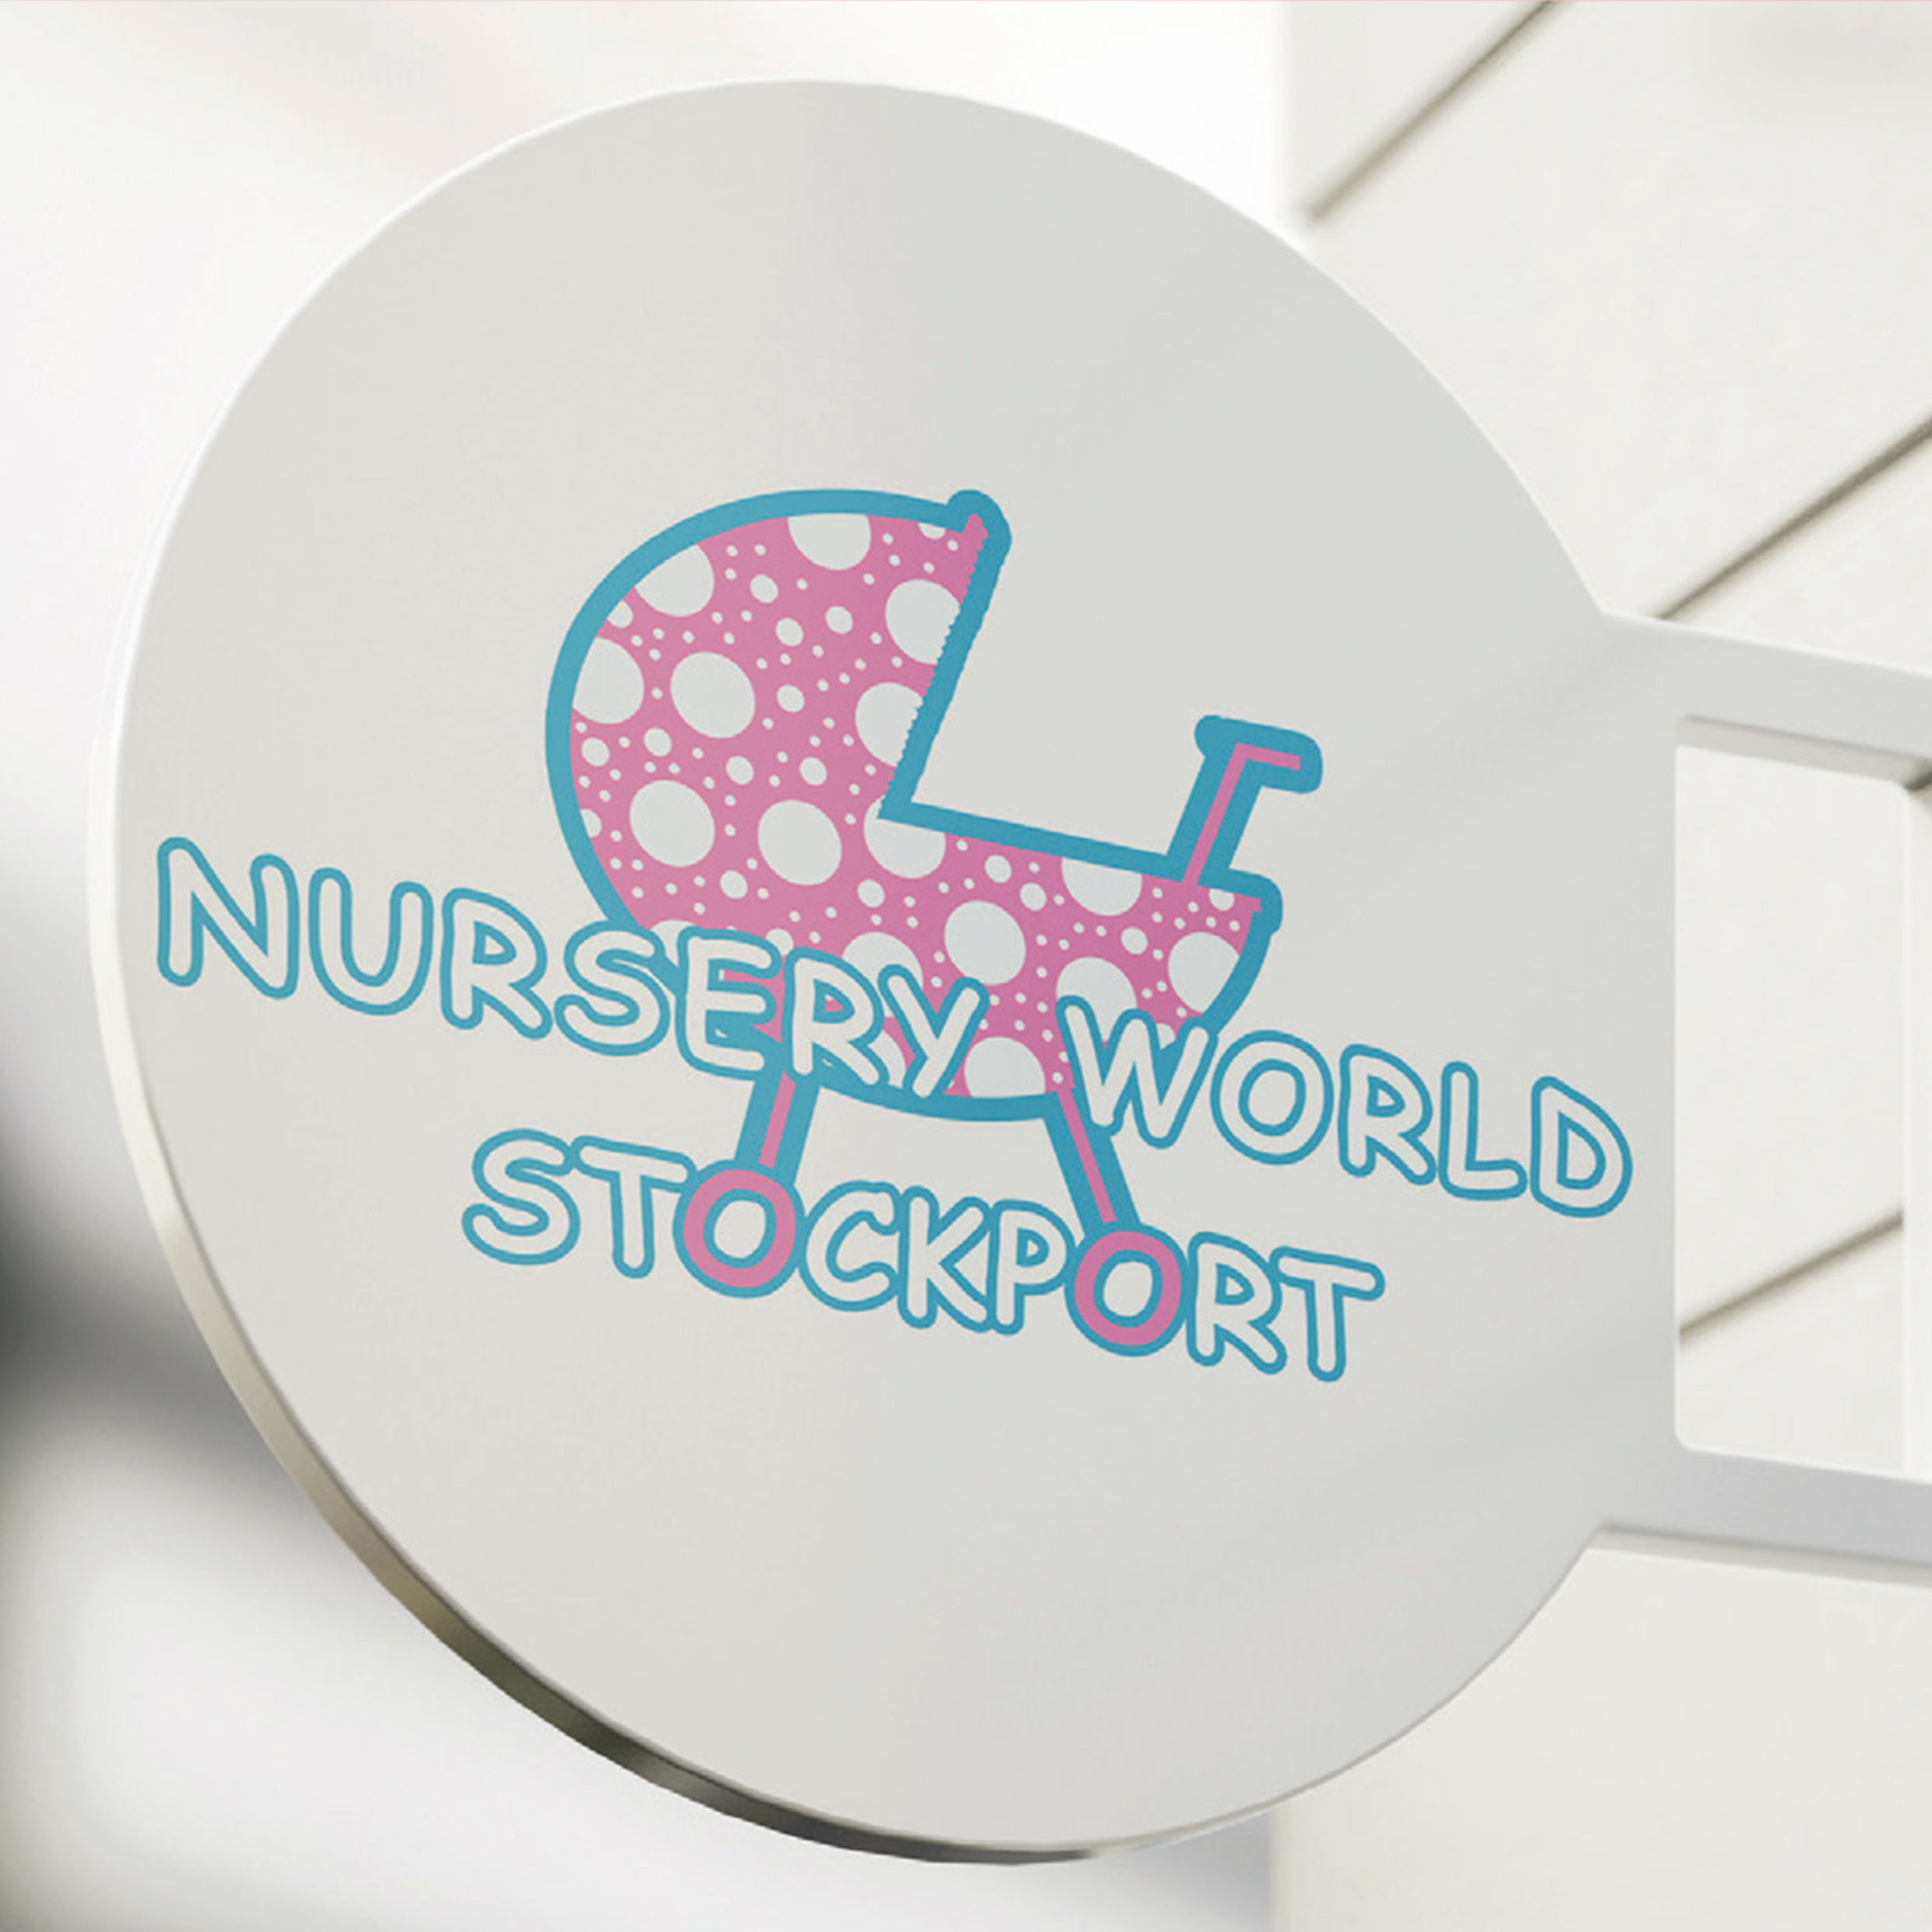 Nursery World Stockport